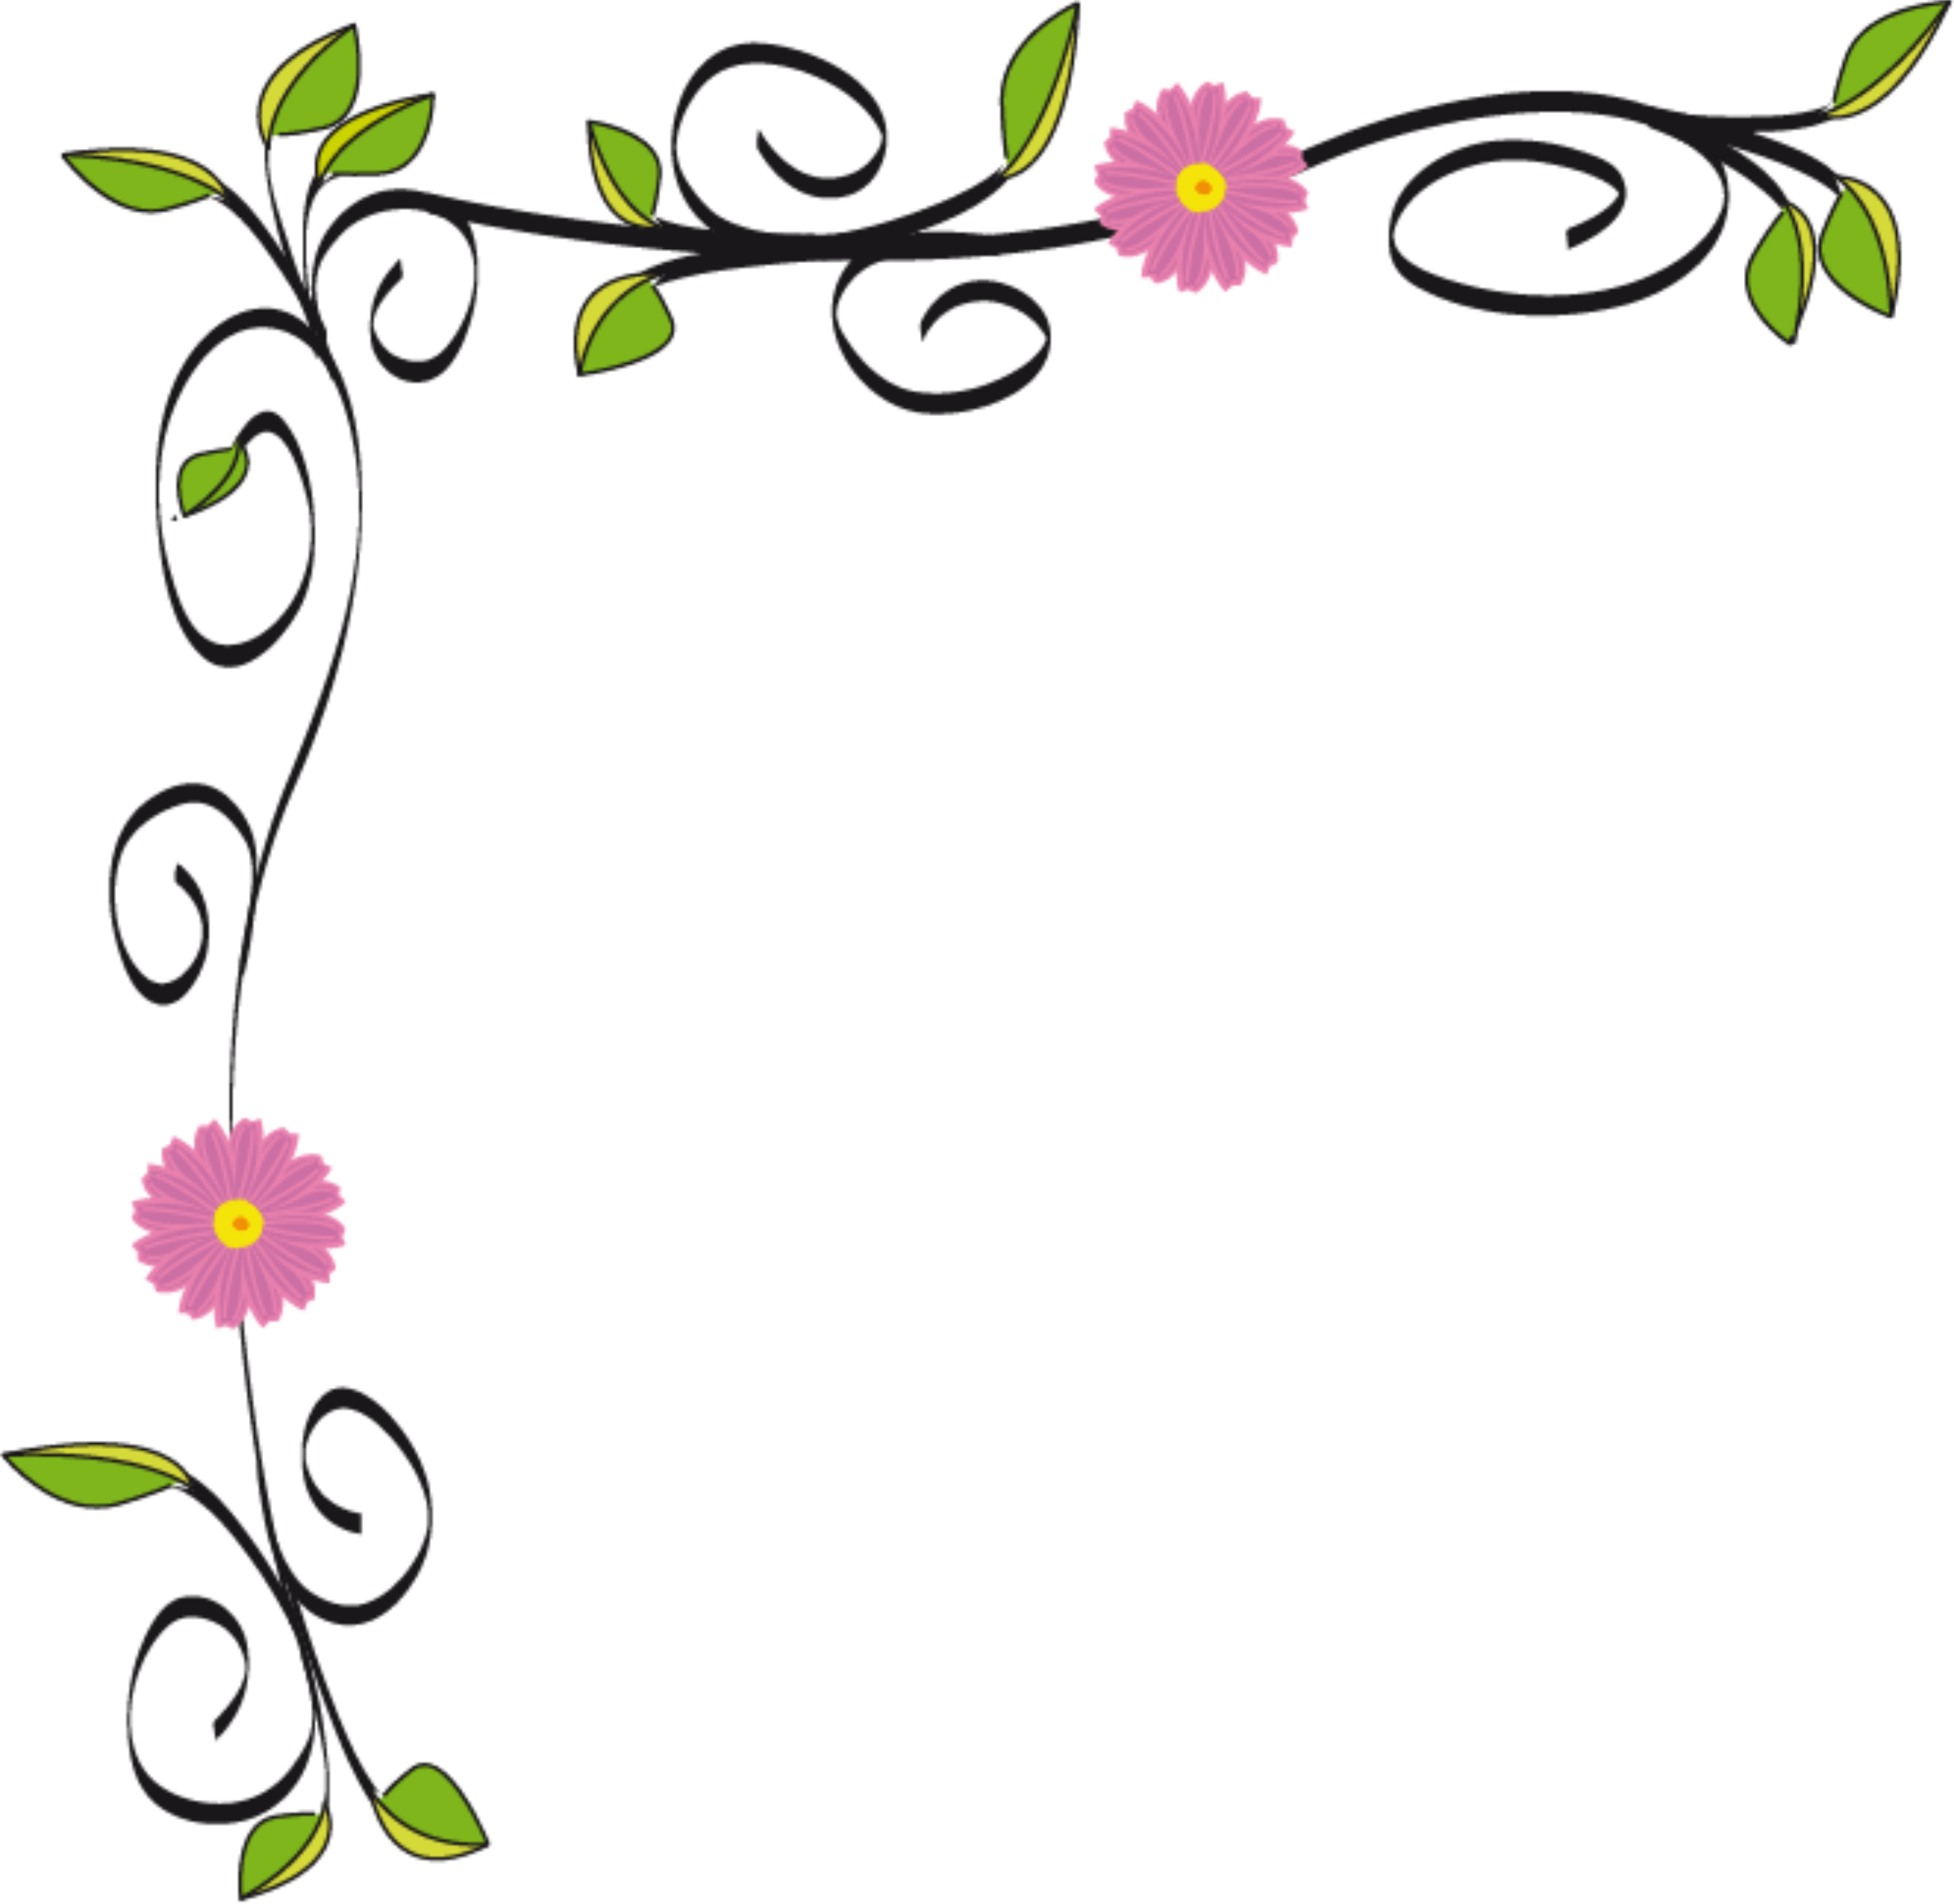 Free funeral clipart borders clip art library Funeral Borders | Free download best Funeral Borders on ClipArtMag.com clip art library